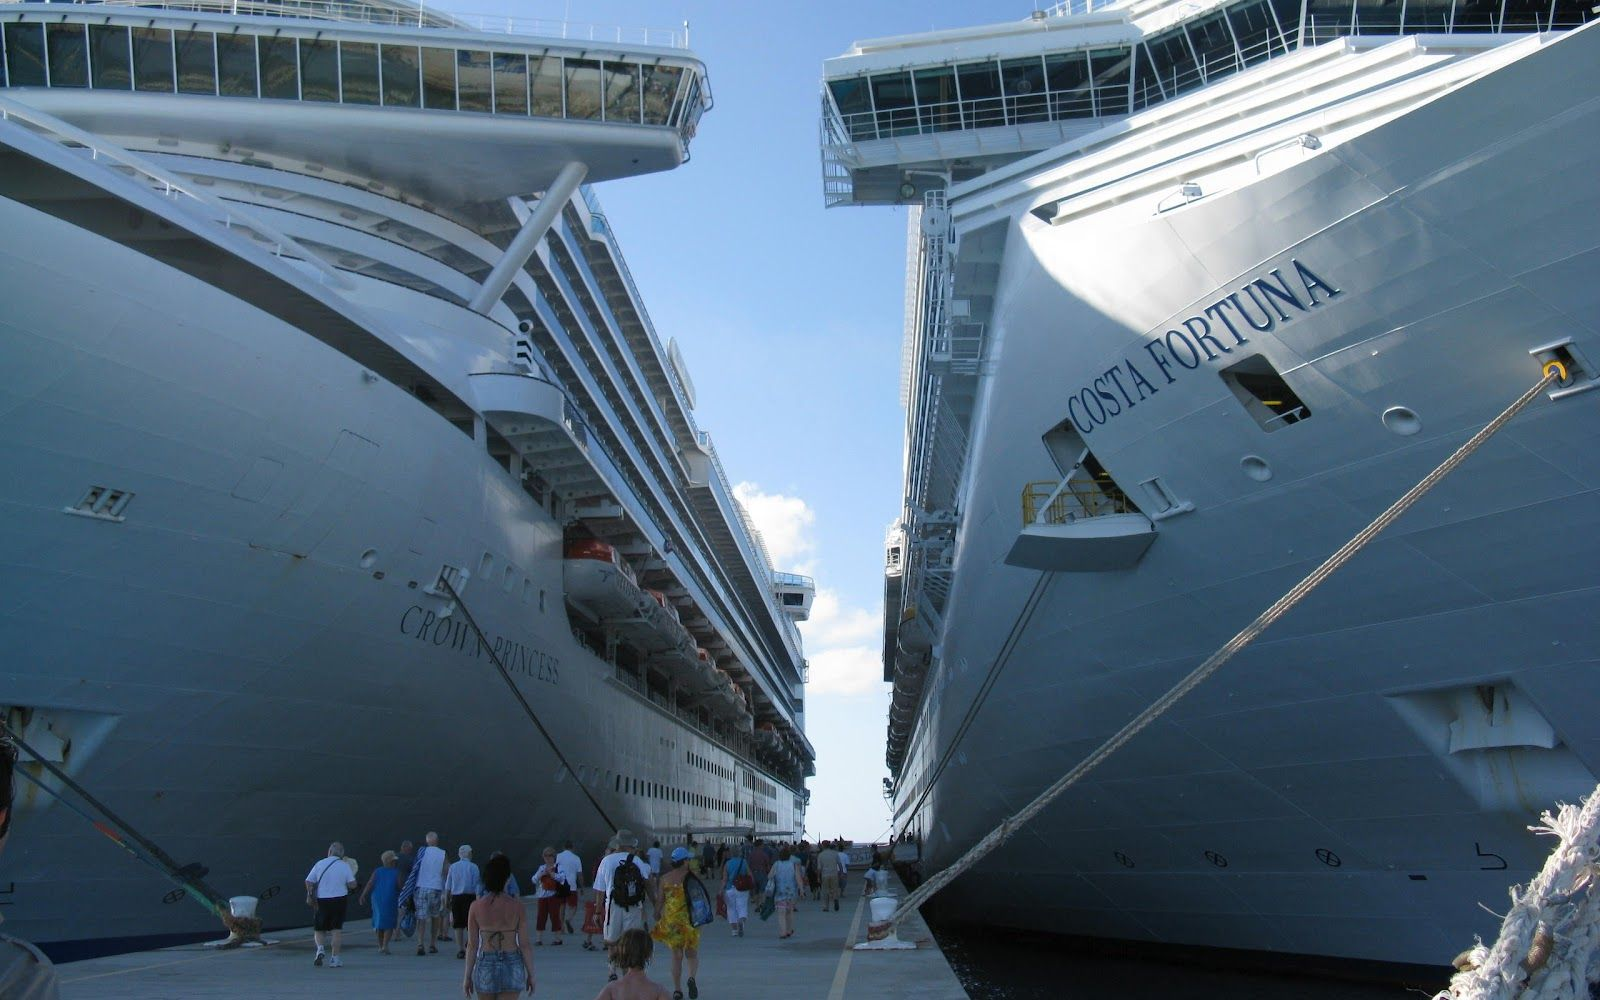 Huge Cruise Ships Harbored The Wallpaper Database Queens Of - Huge cruise ship